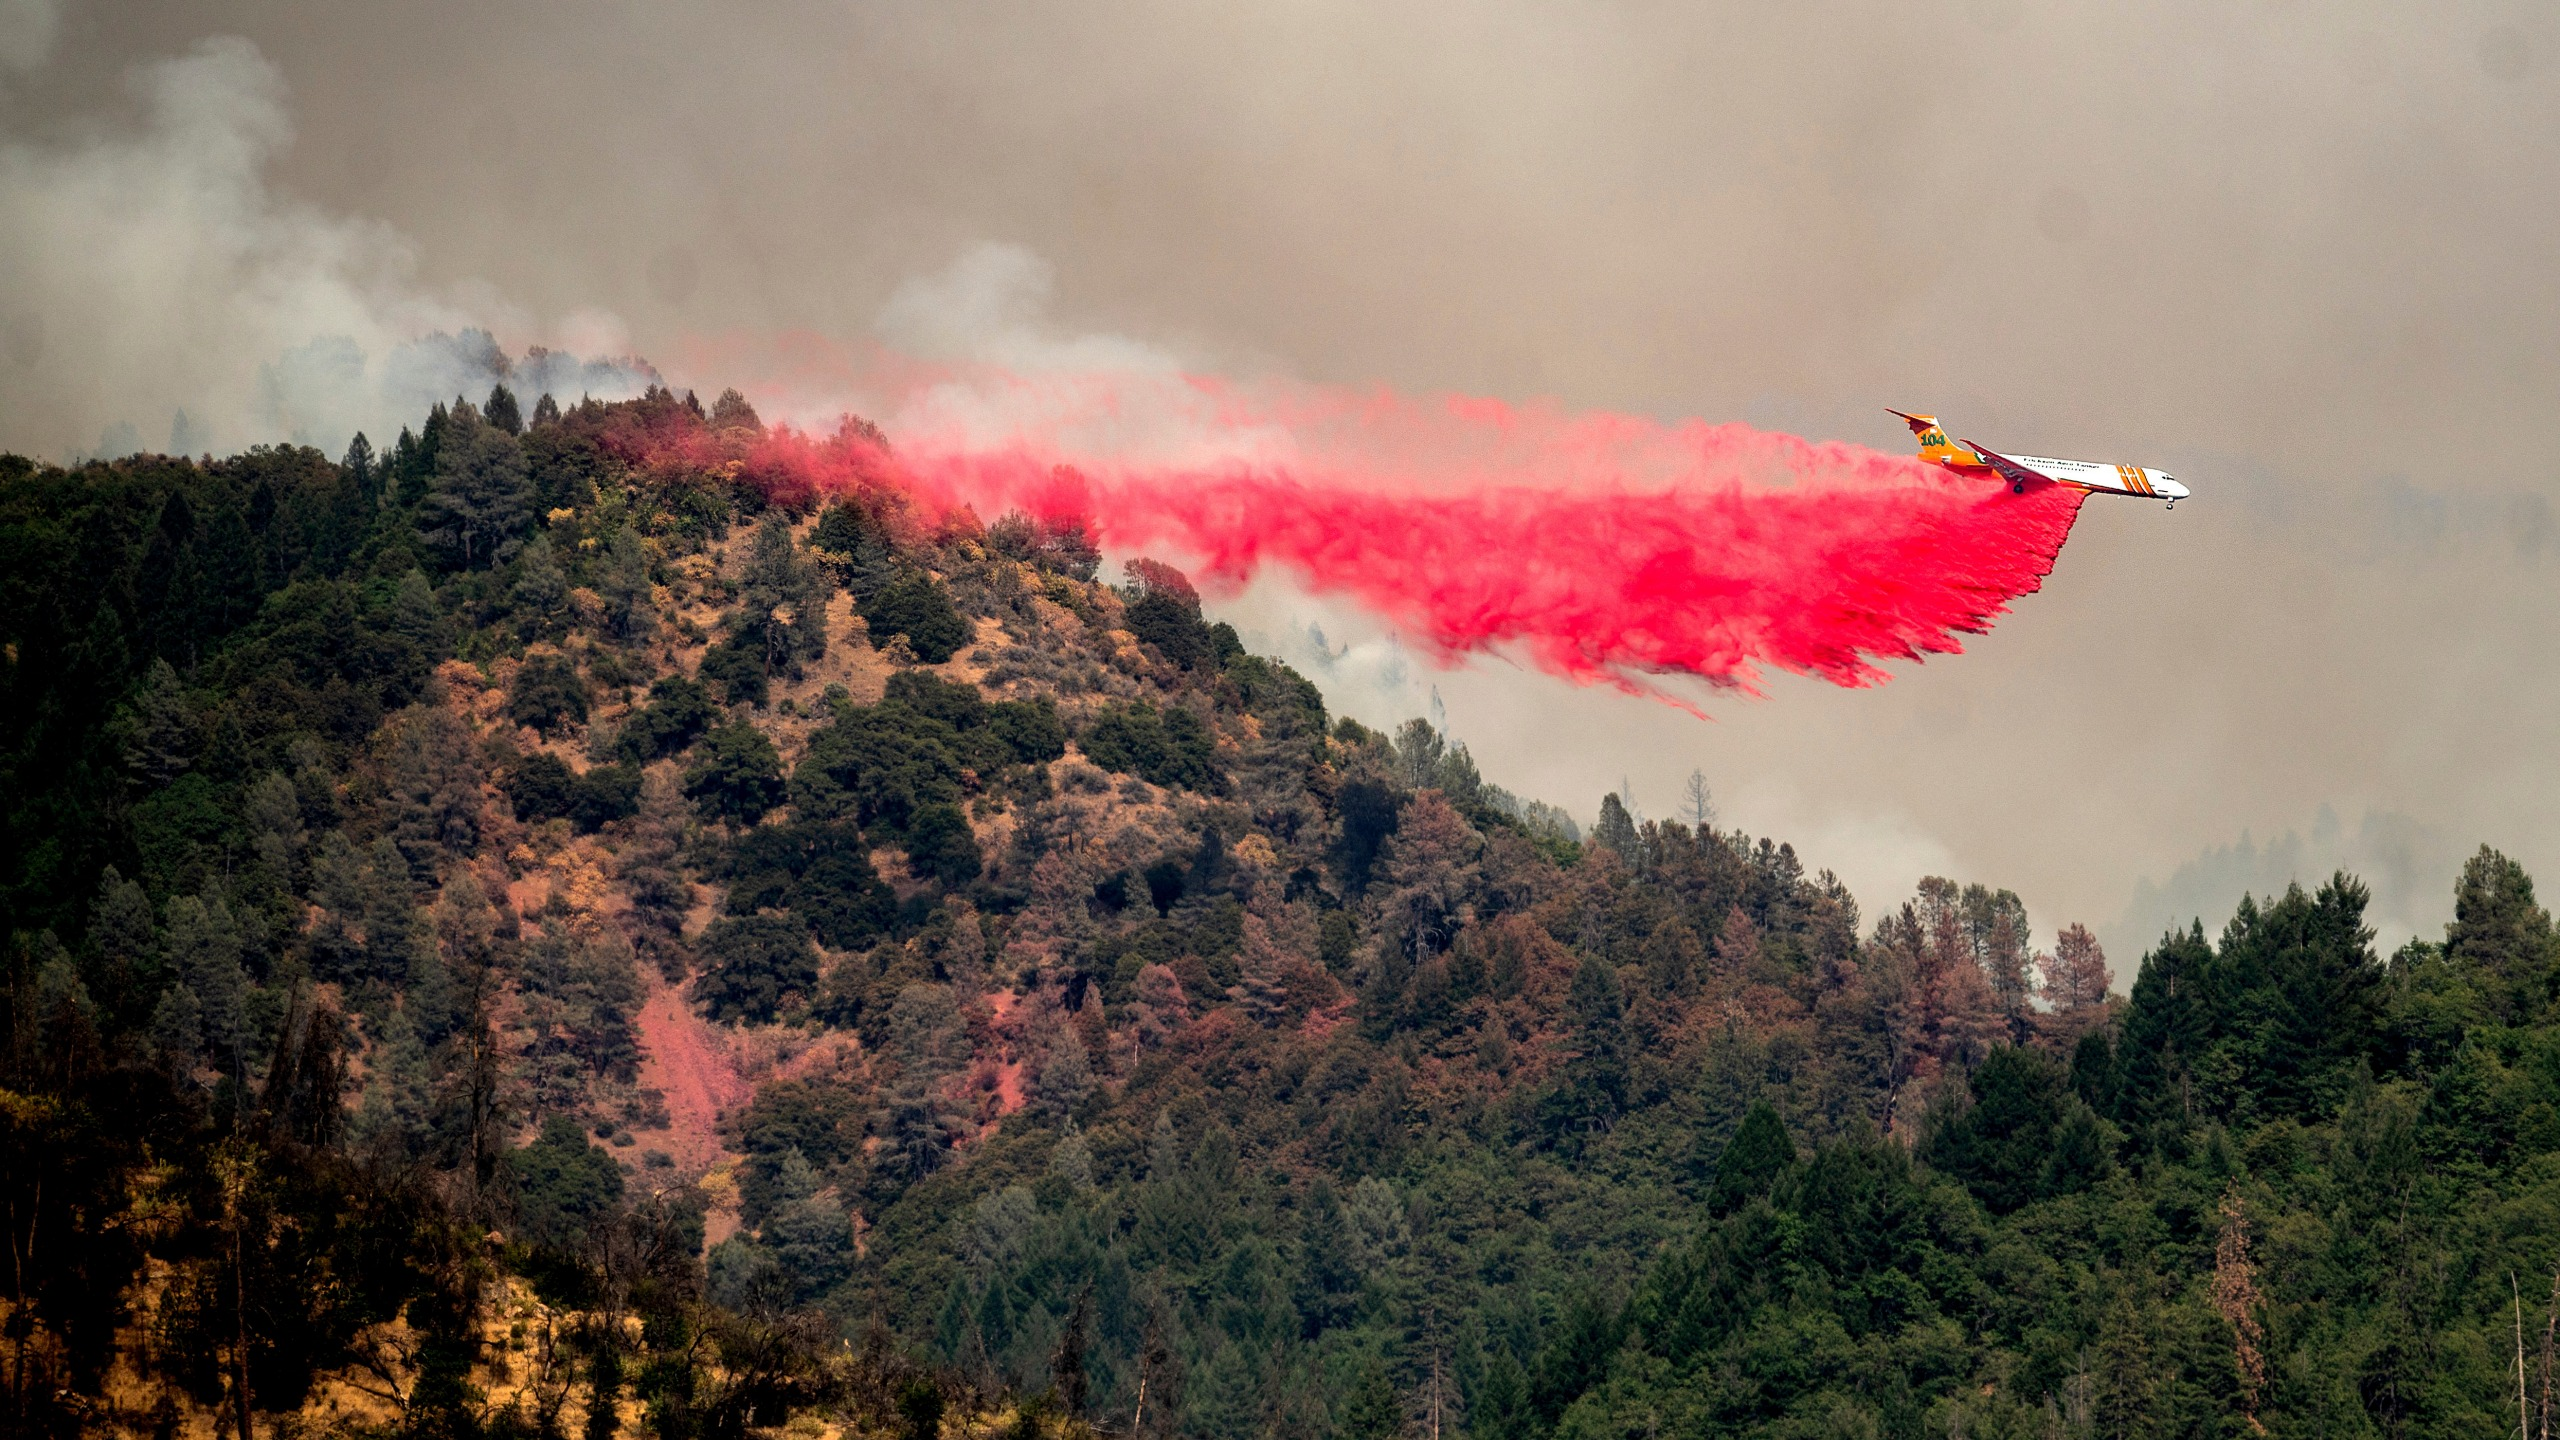 An air tanker drops retardant while trying to stop the Salt Fire from spreading near Lakehead in unincorporated Shasta County, Calif., on July 2, 2021. (Noah Berger / Associated Press)